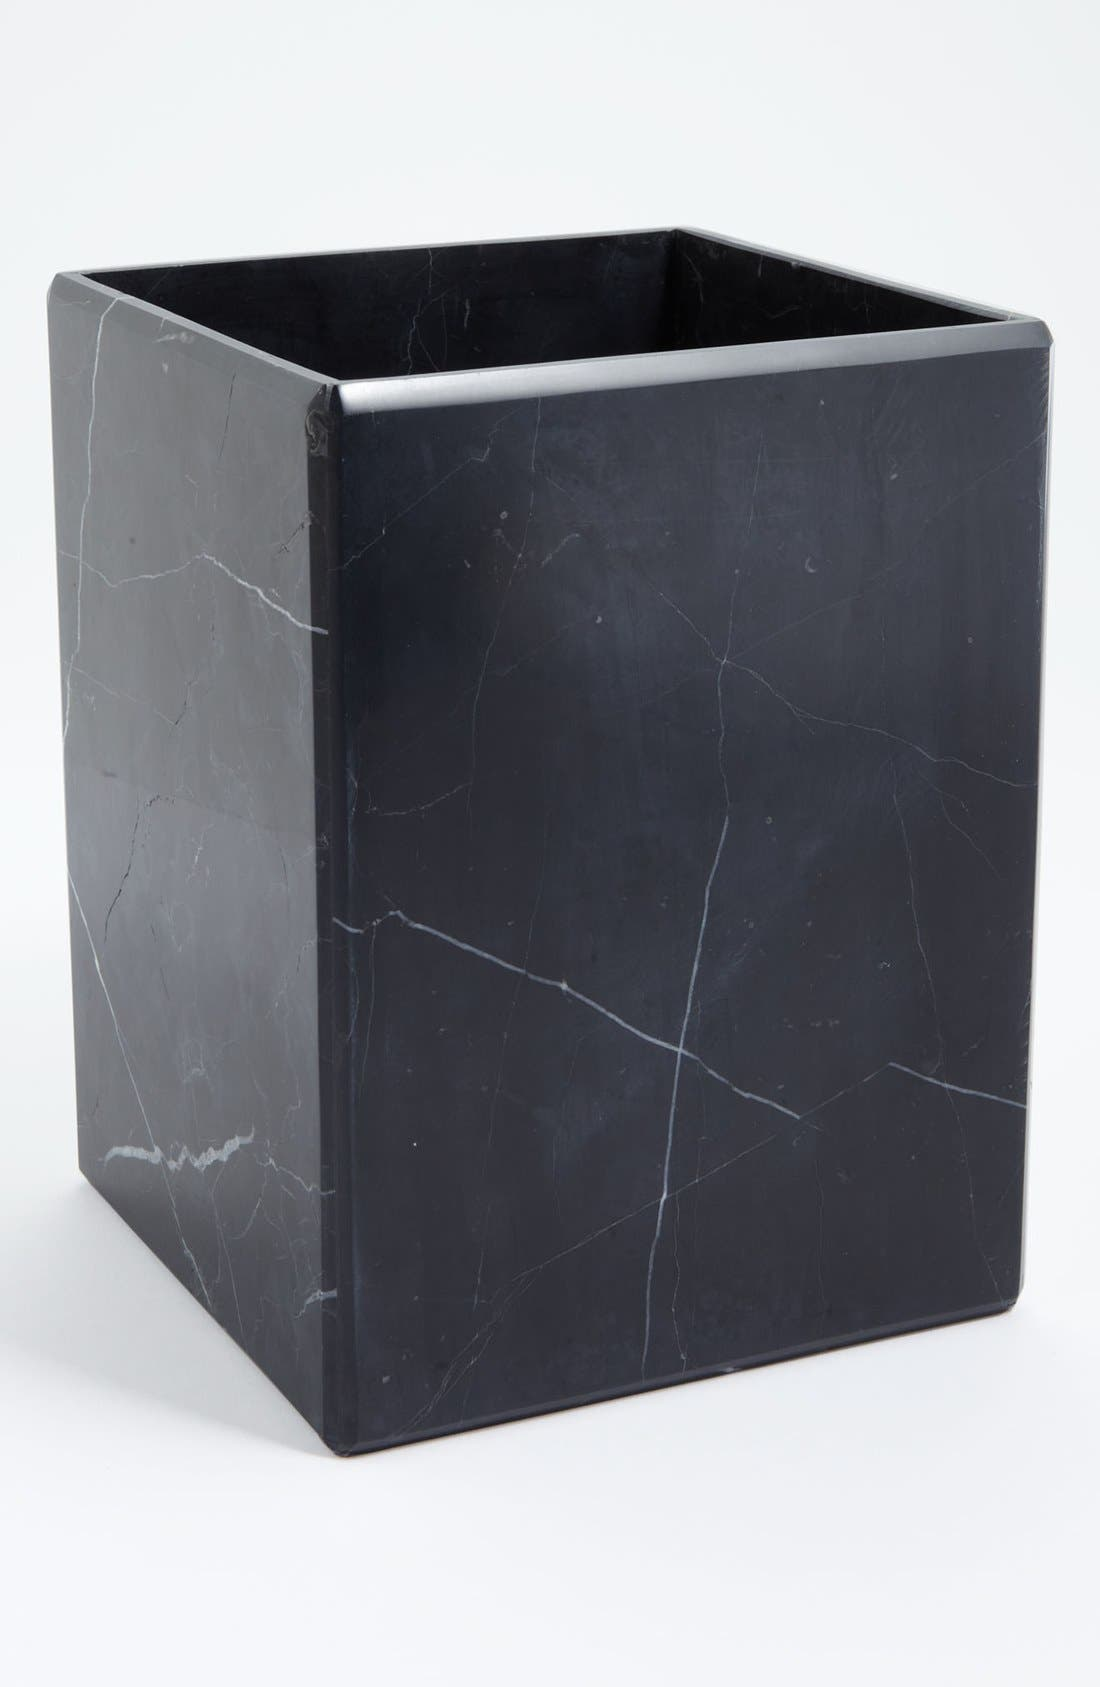 Waterworks Studio 'Luna' Black Marble Wastebasket (Online Only)